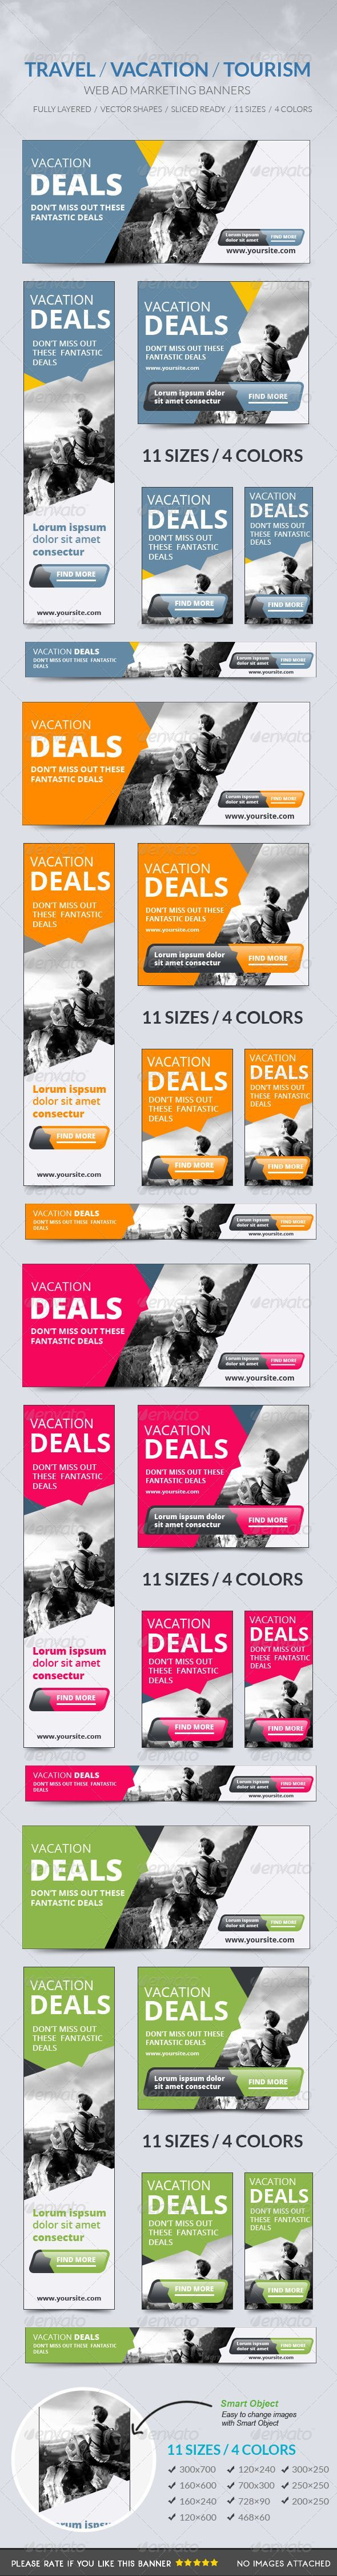 Travel Vacation Tourism Banner Template PSD | Buy and Download: http://graphicriver.net/item/travel-vacation-tourism-banner-/8715190?WT.ac=category_thumb&WT.z_author=msrashdi&ref=ksioks: